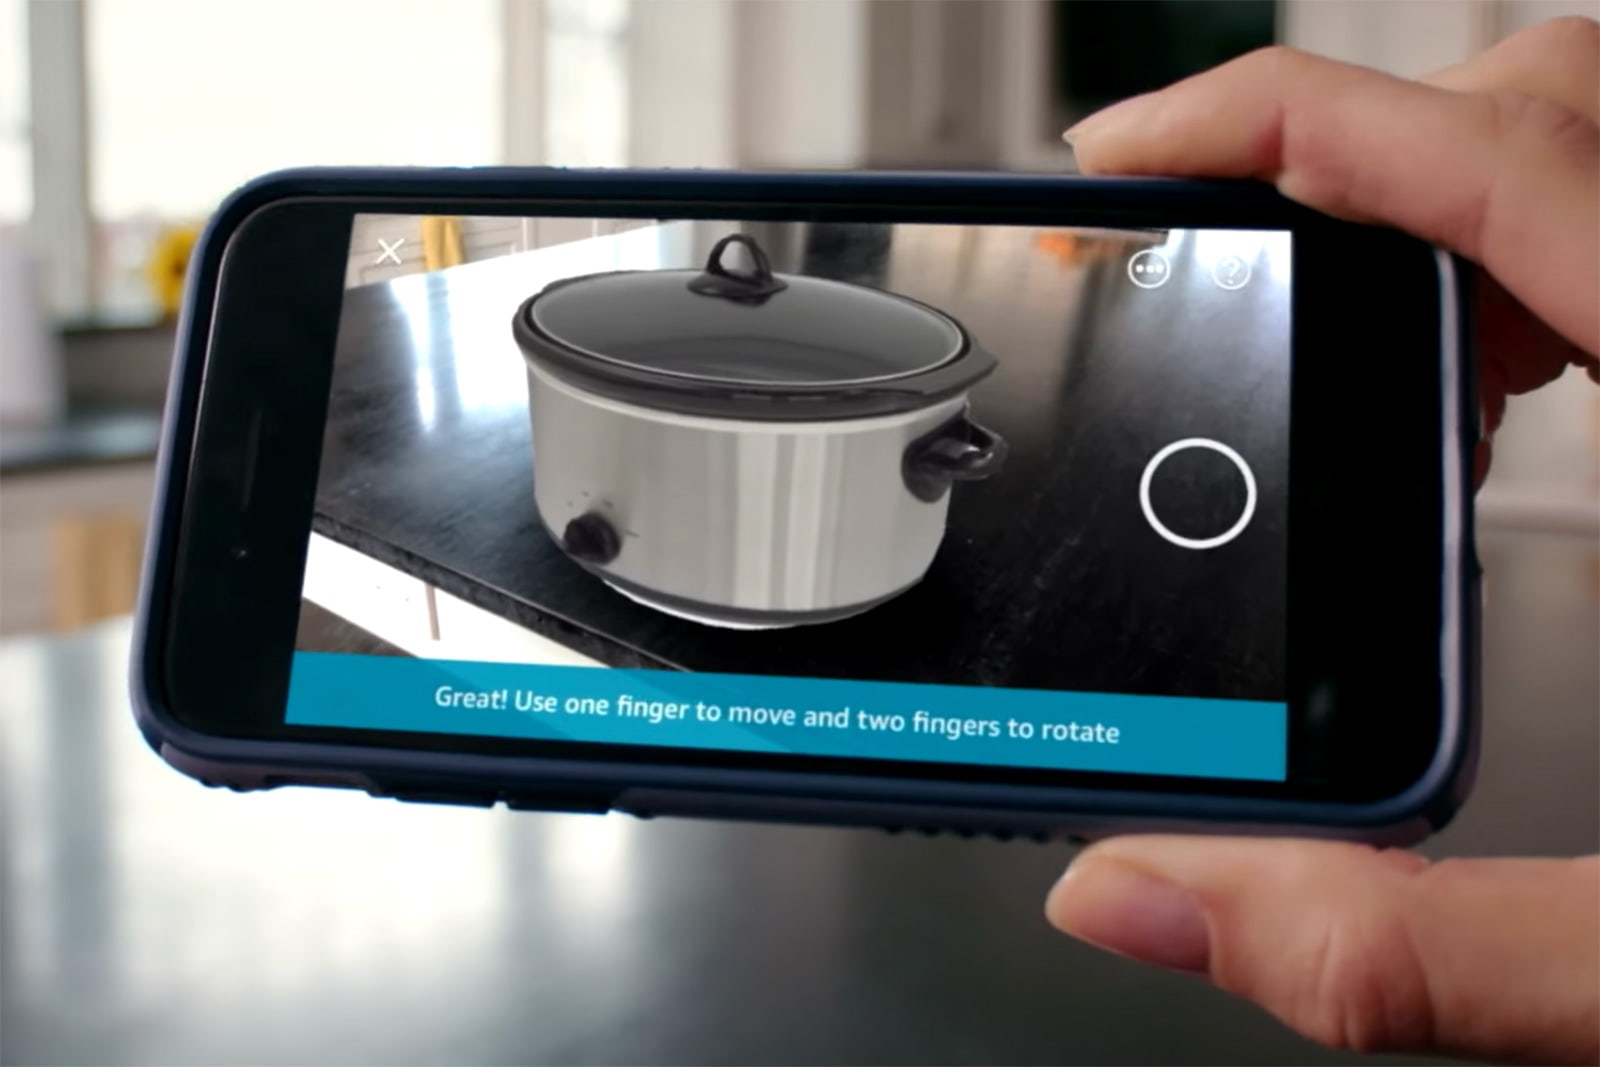 Amazon's AR shopping tool is now available on Android